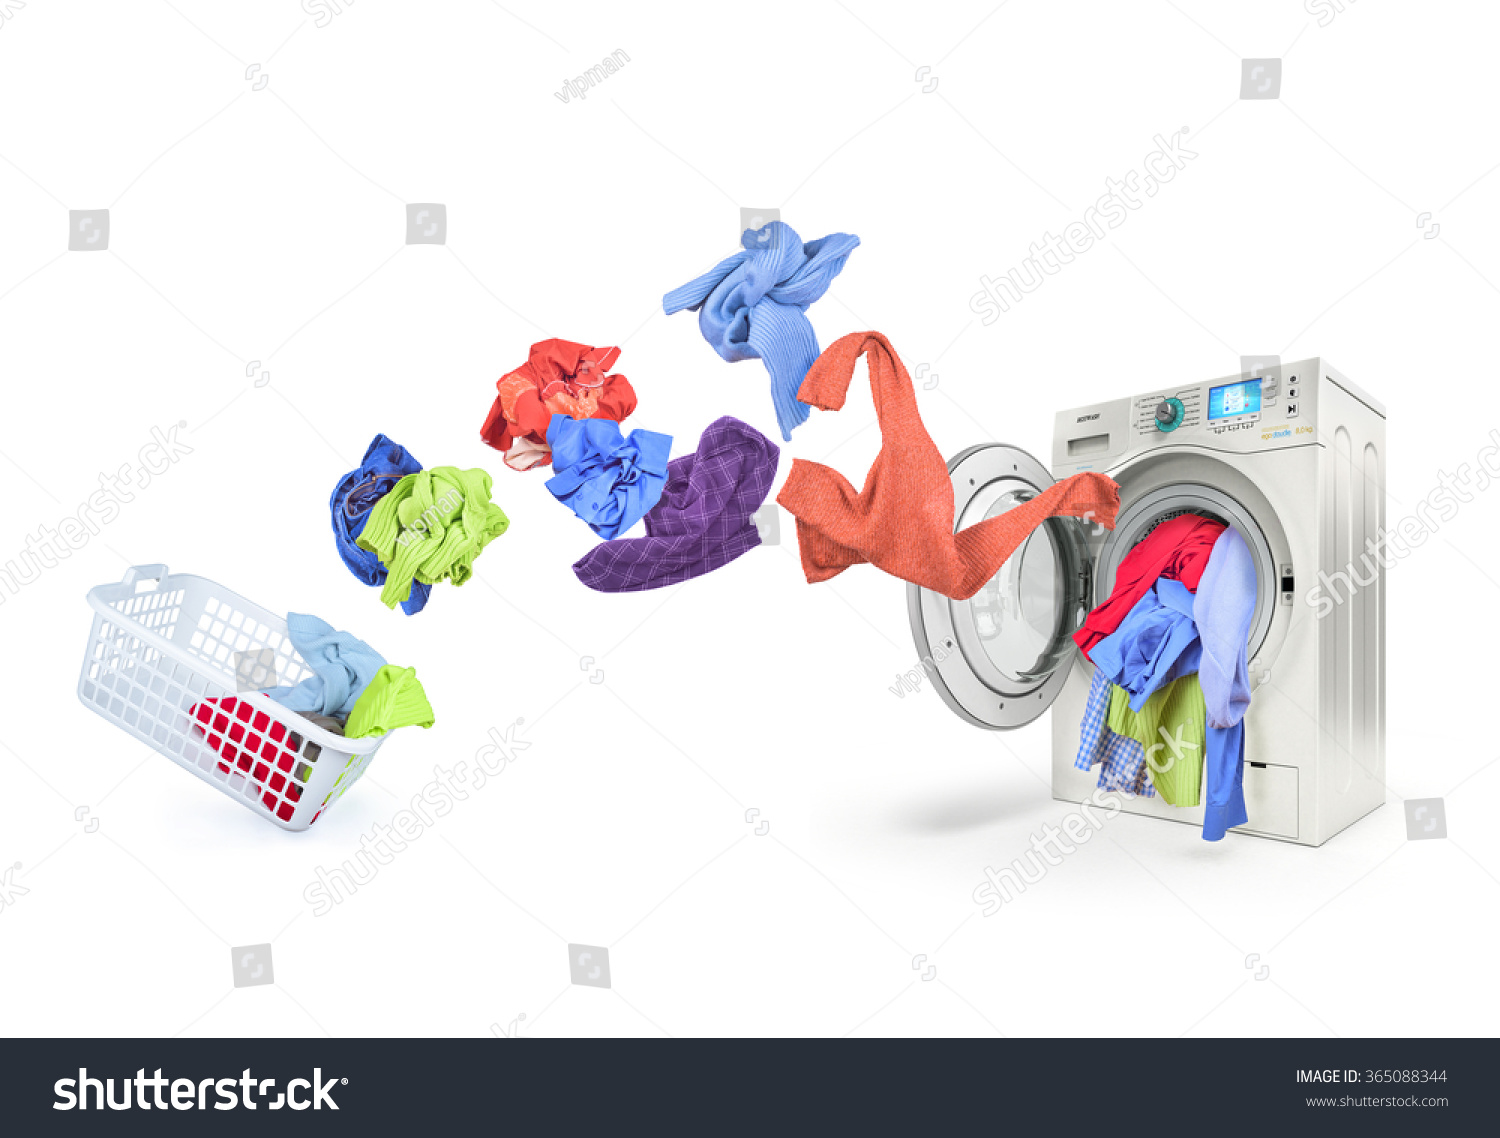 clothing falls into washing machine stock photo 365088344 shutterstock. Black Bedroom Furniture Sets. Home Design Ideas